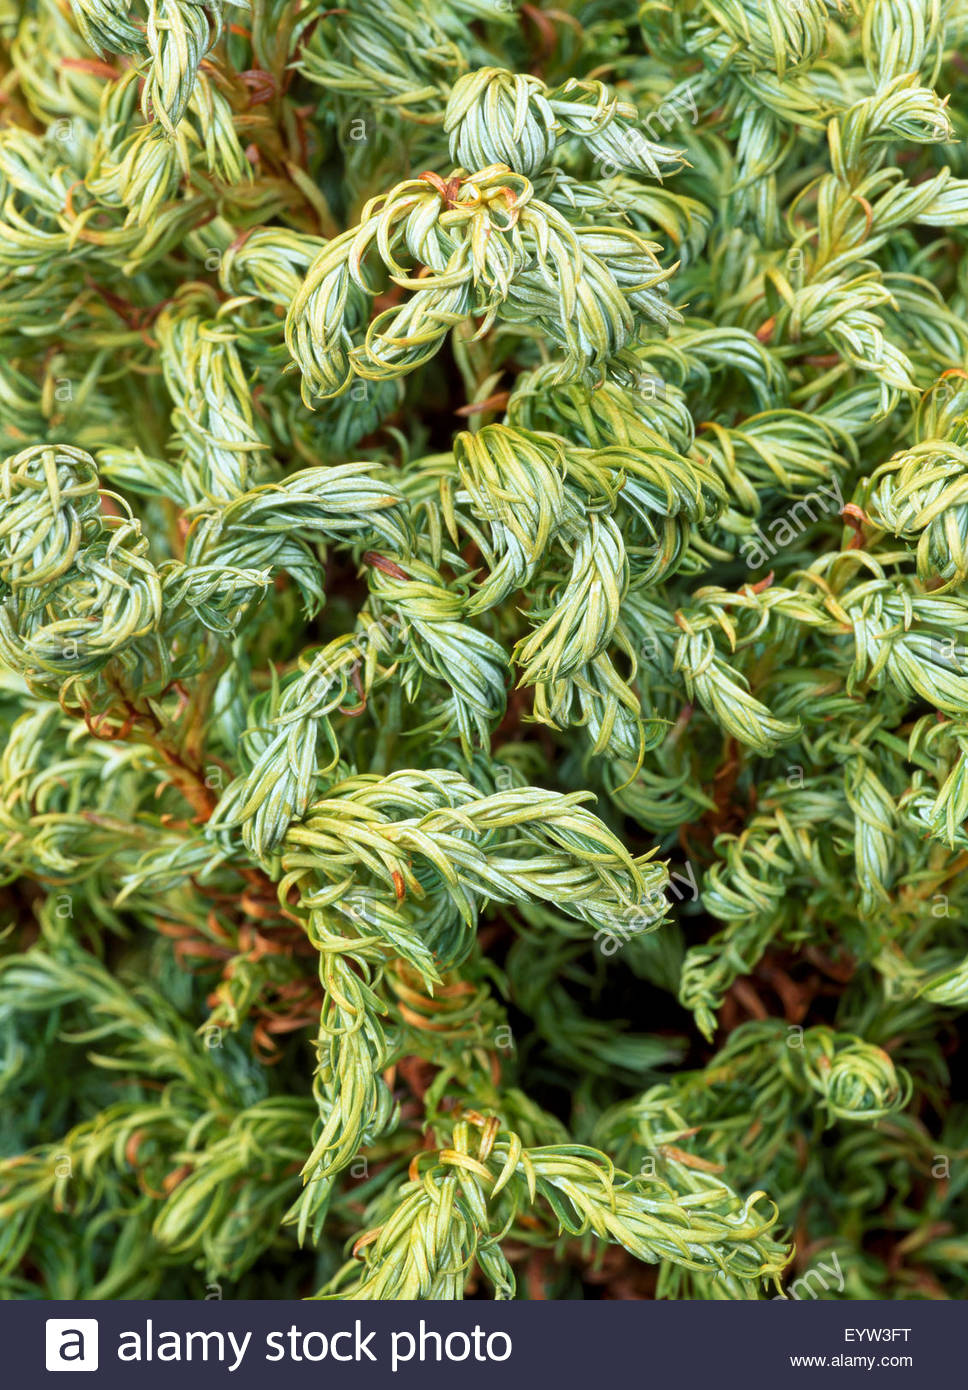 Chamaecyparis pisifera 'Curly Tops' - Stock Image